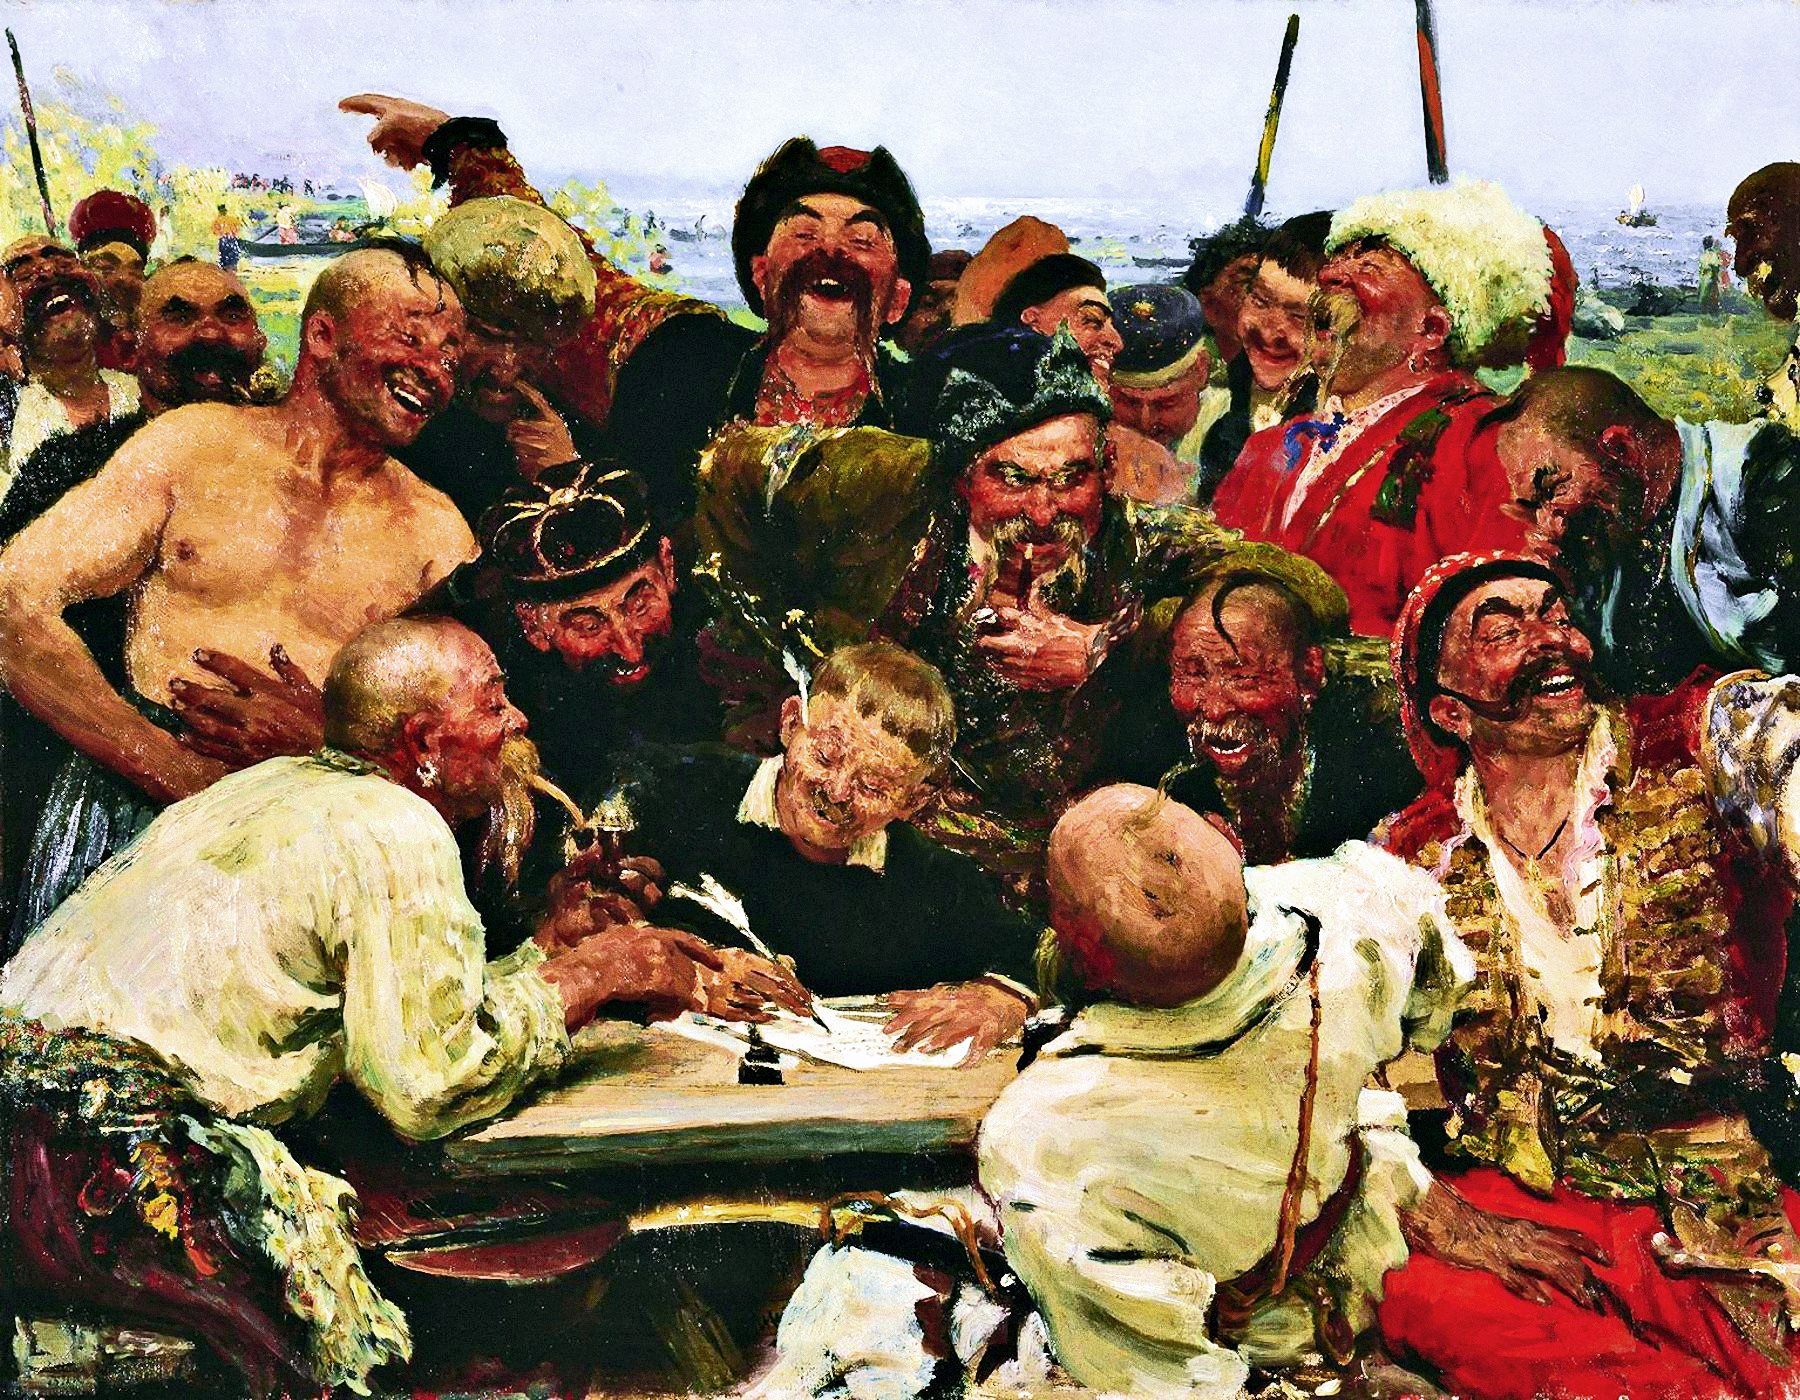 00 Ilya Repin. A Study for 'The Zaporozhe Cossacks Write a Mocking Letter to the Turkish Sultan'. 1880